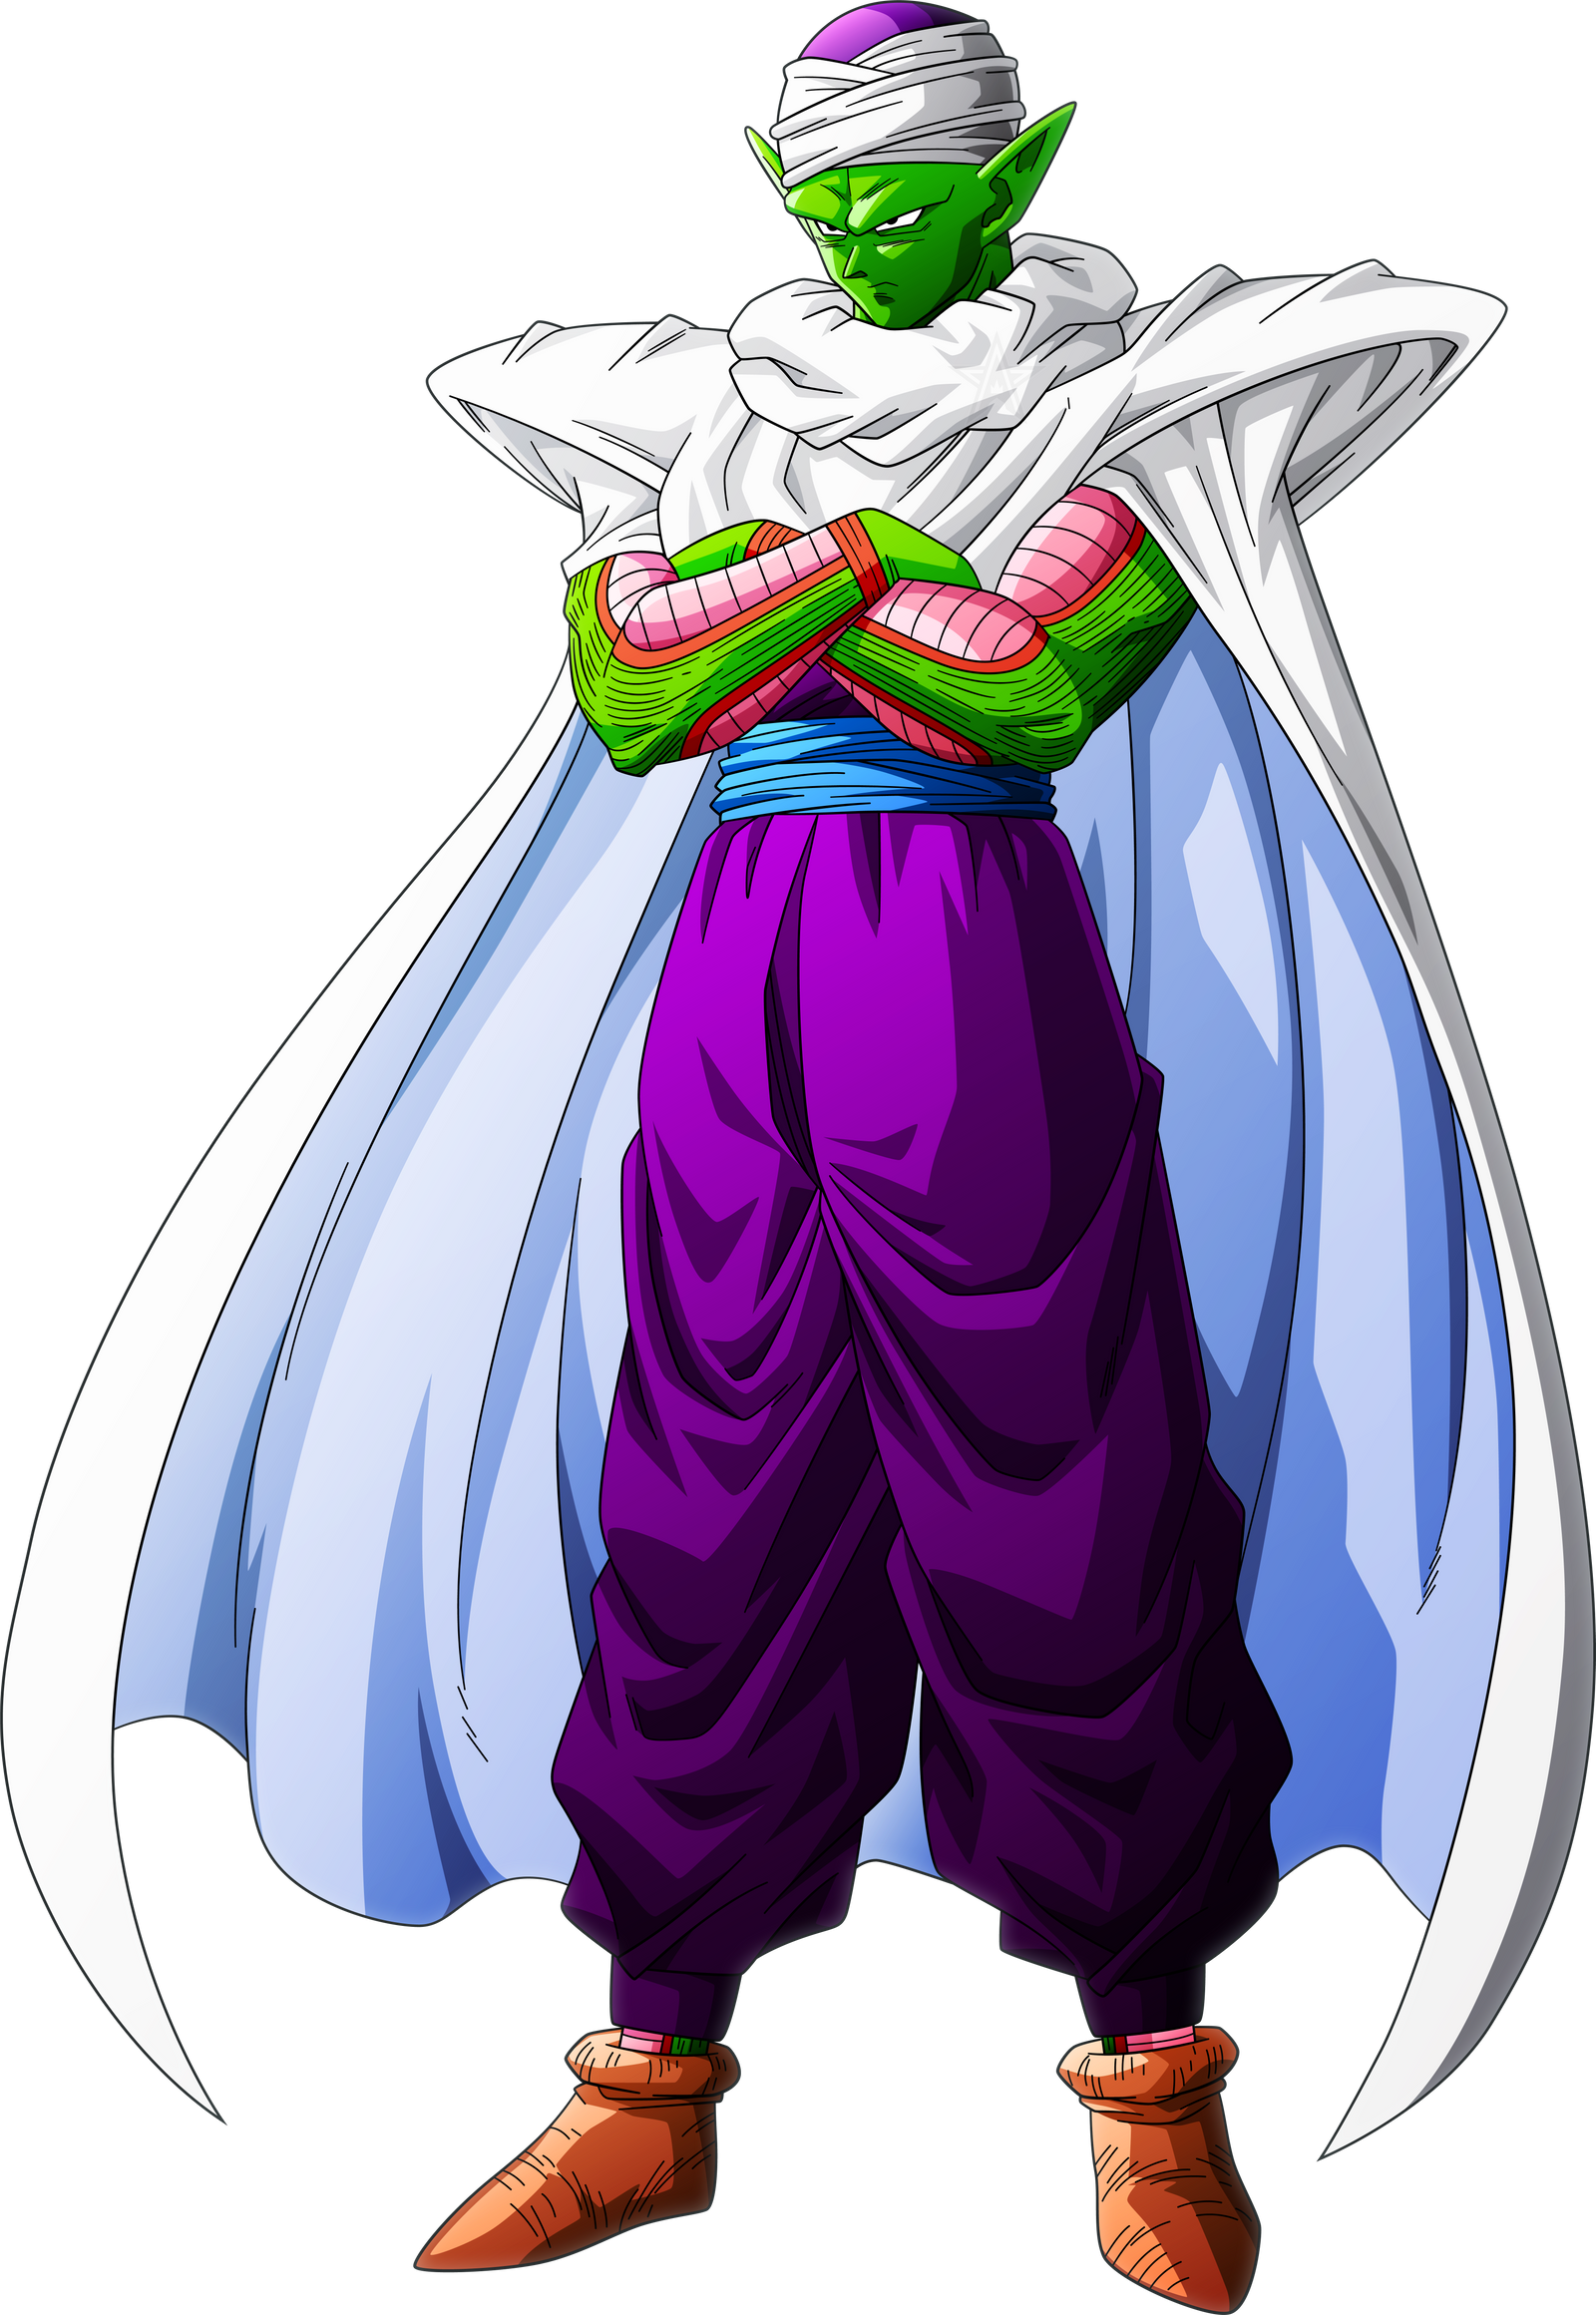 piccolo__1_by_aubreiprince-dbadhfh.png